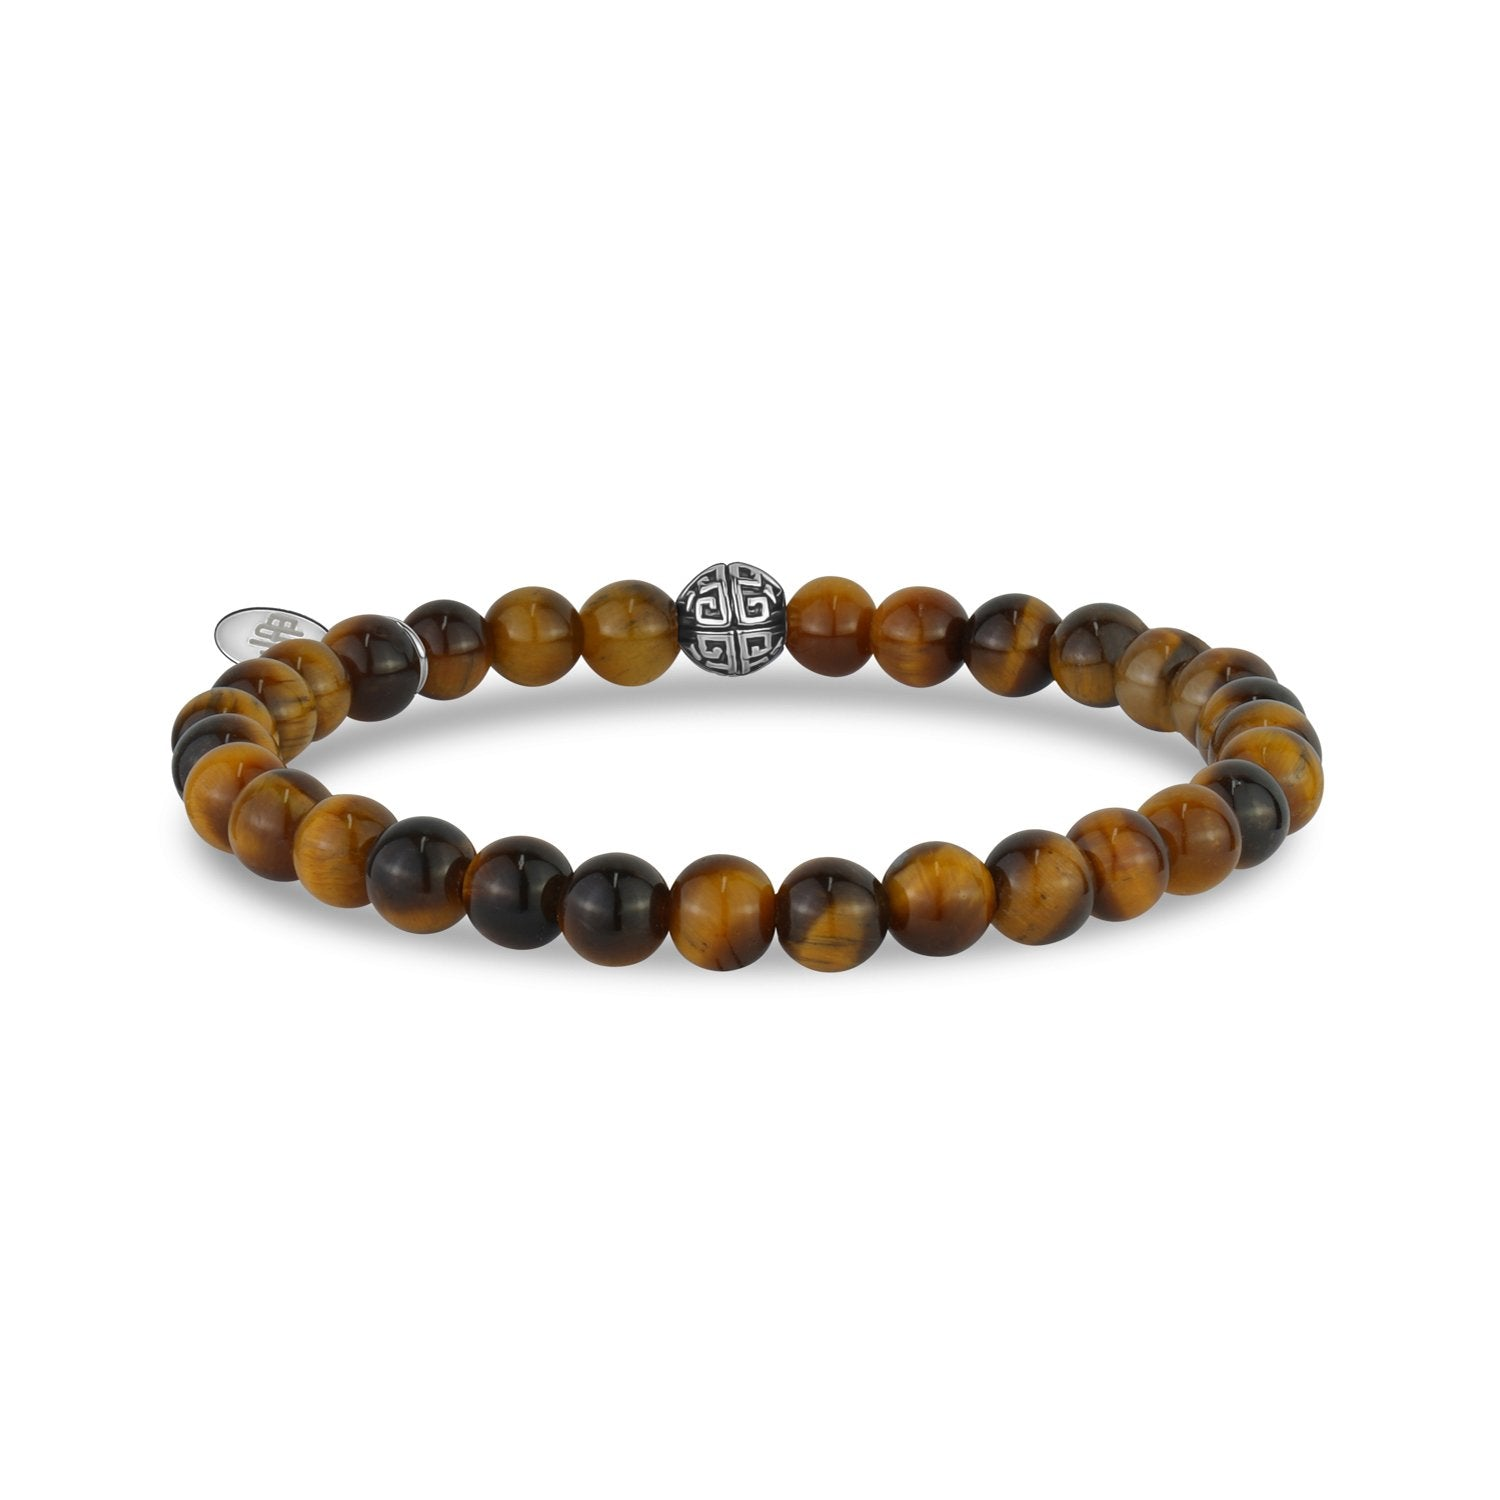 Unisex Bead Bracelet - 6mm Brown Tiger Eye Stretch Bead Bracelet